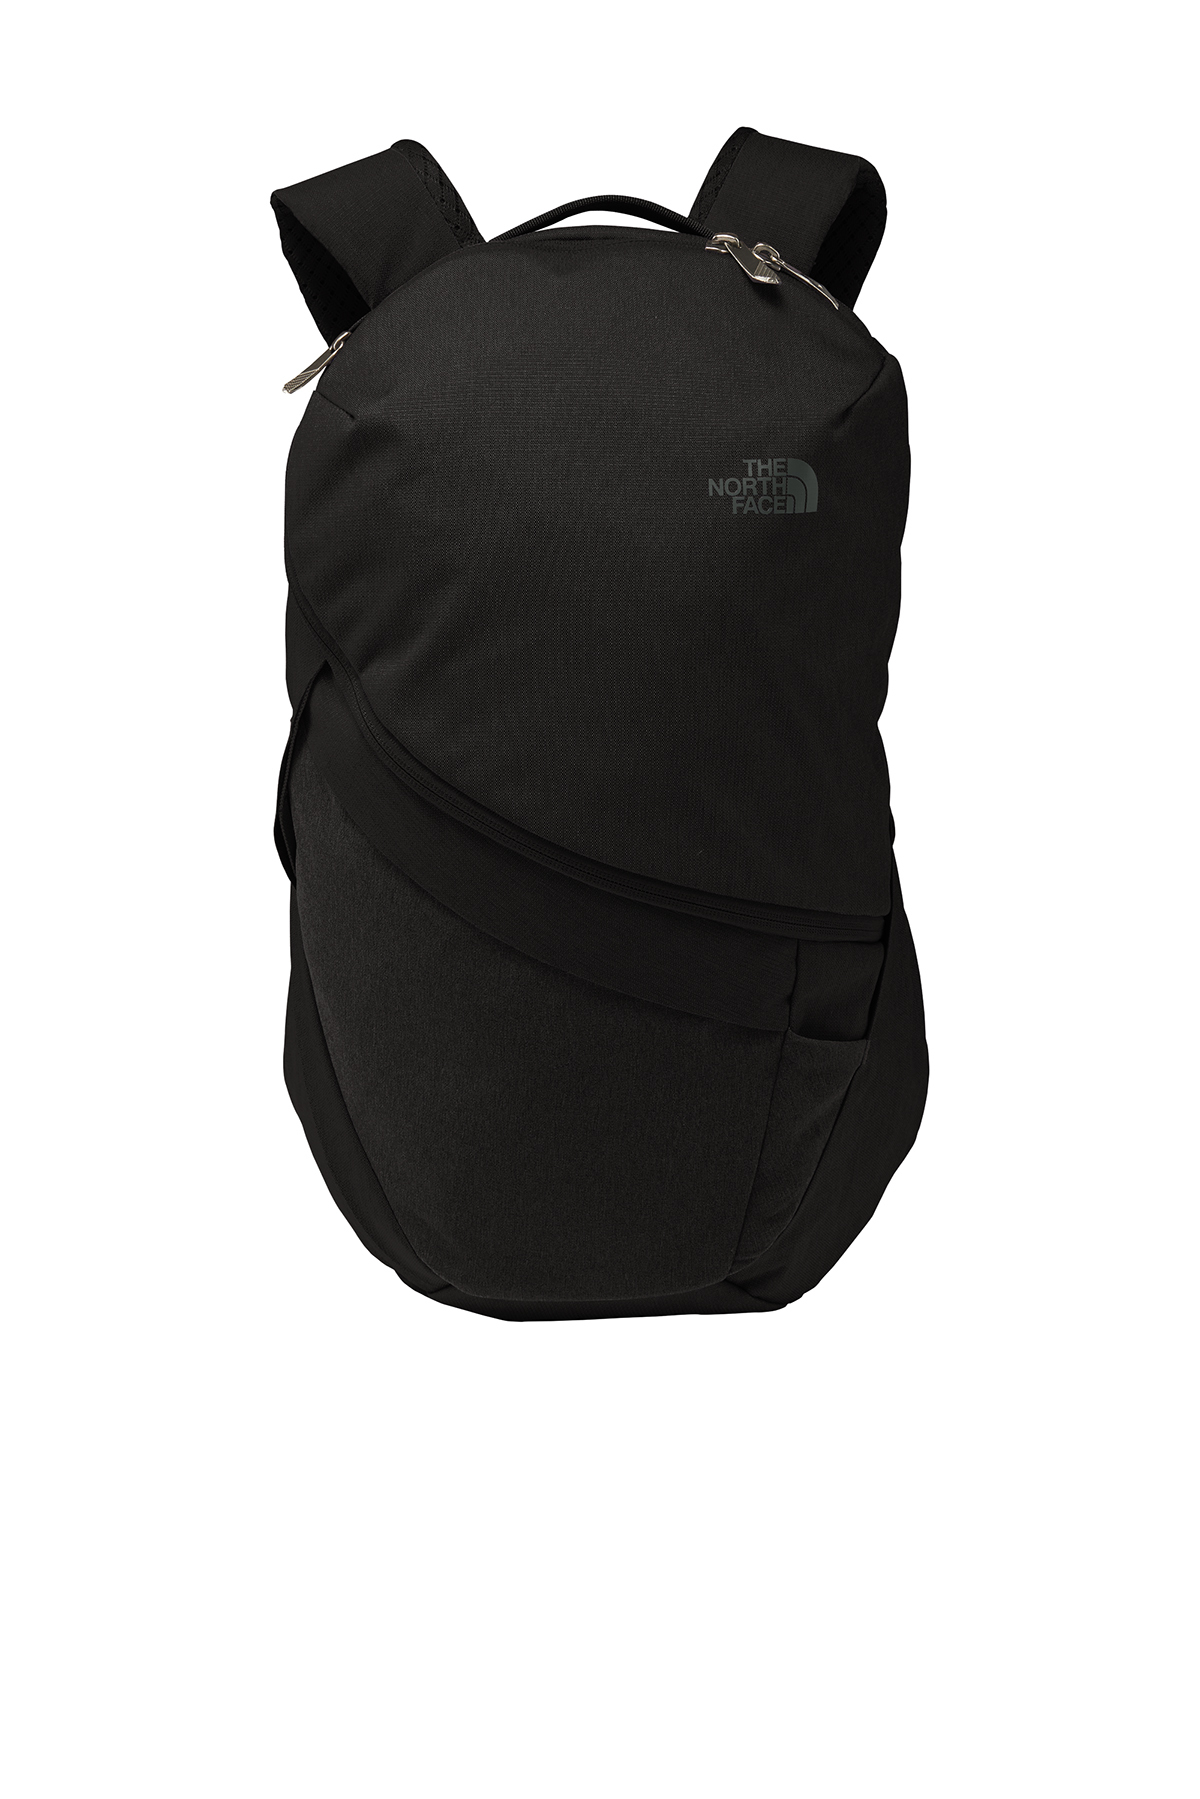 7d2f36c82 The North Face ® Aurora II Backpack | The North Face | Brands | SanMar